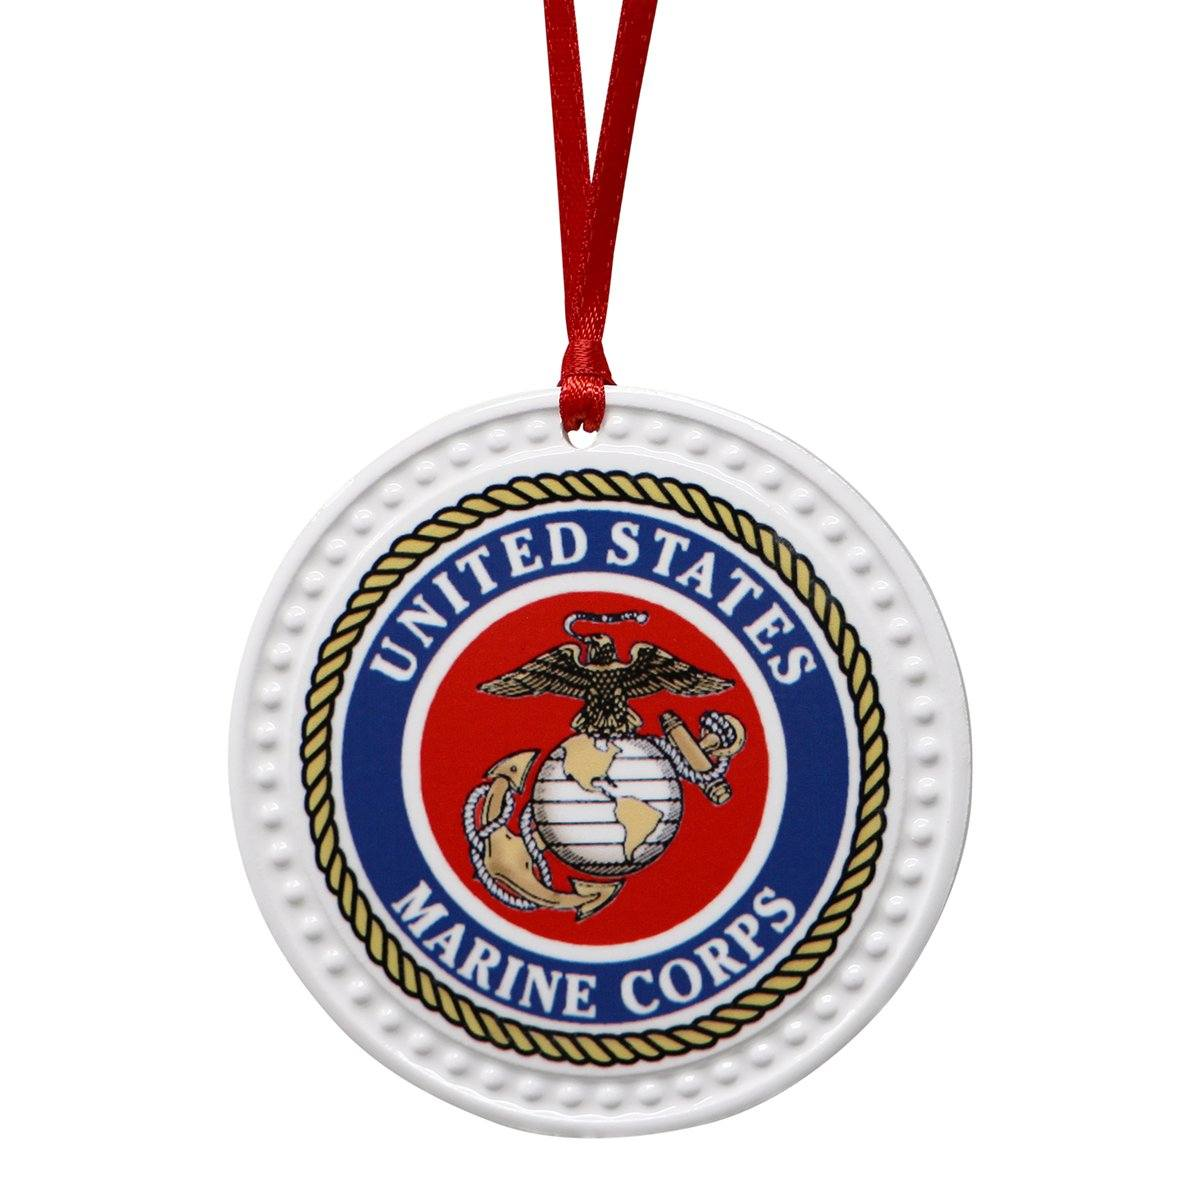 United States Marine Corps Seal Ornament